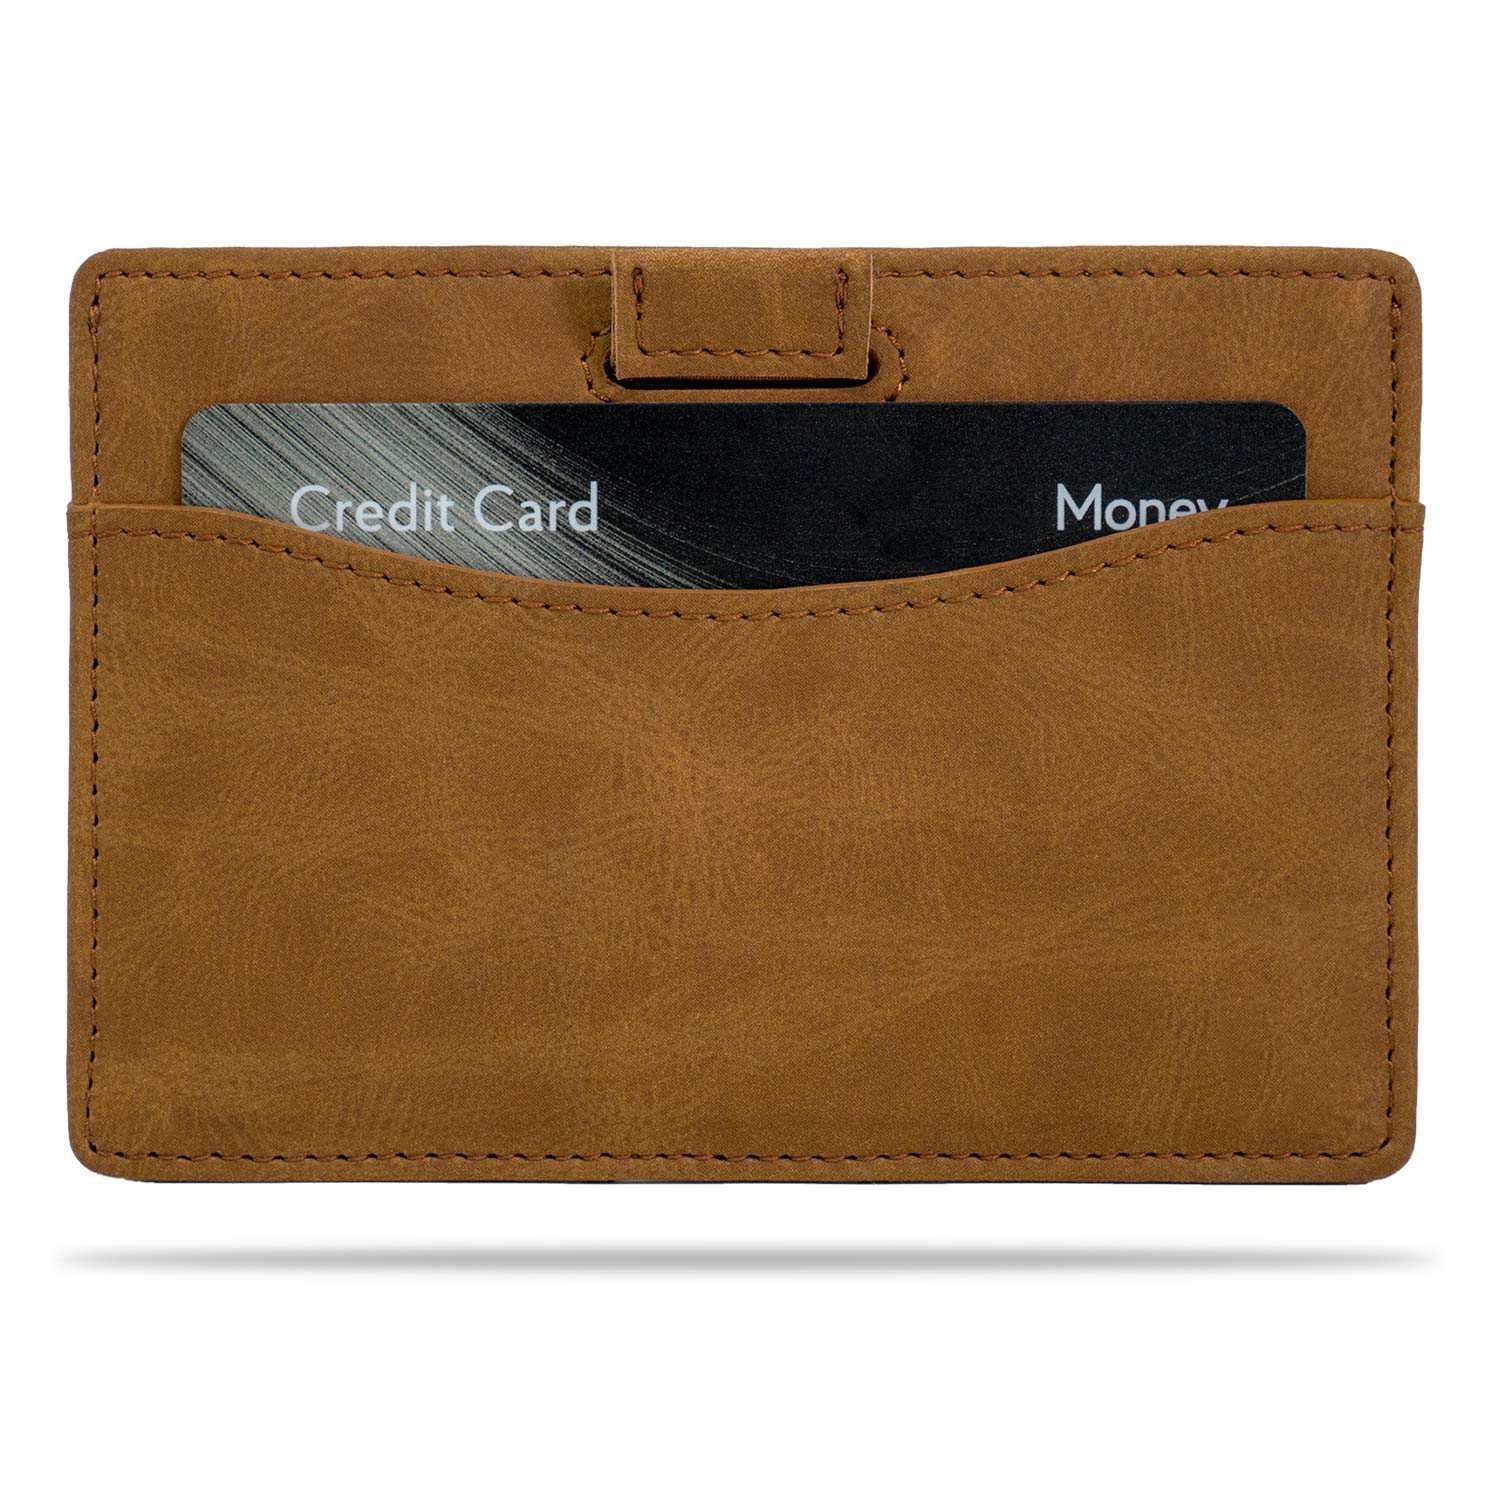 Compact and slim RFID blocking leather credit card holder mens card holder with pull-tab